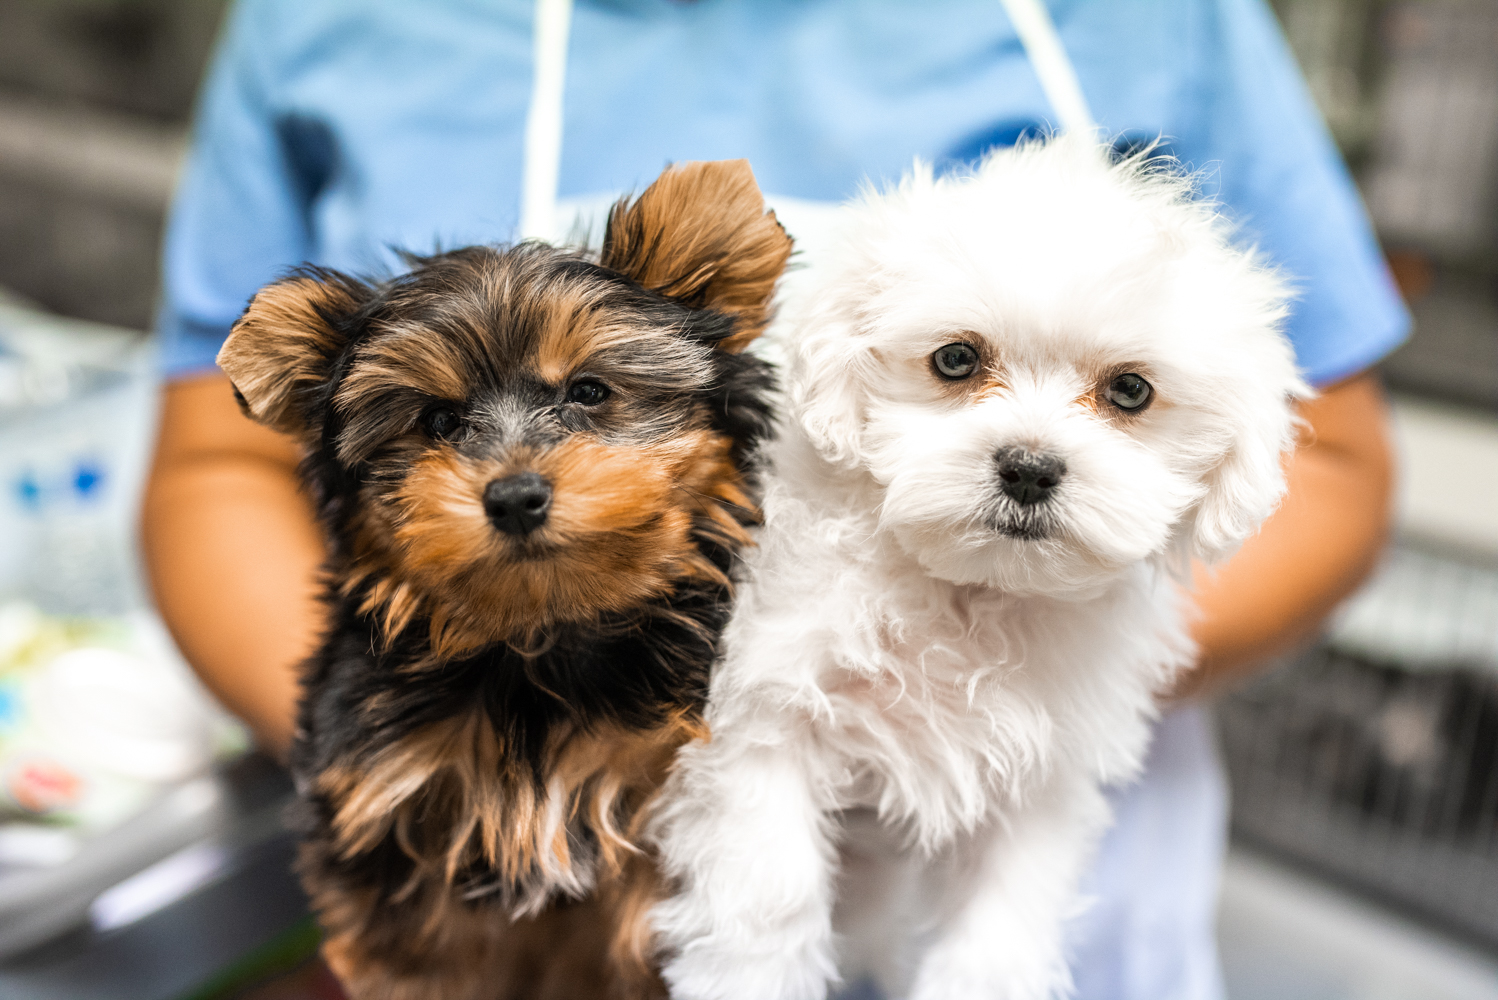 Puppy Boutique Las Vegas reviews | Pet Adoption at 4343 N Rancho Dr - Las Vegas NV